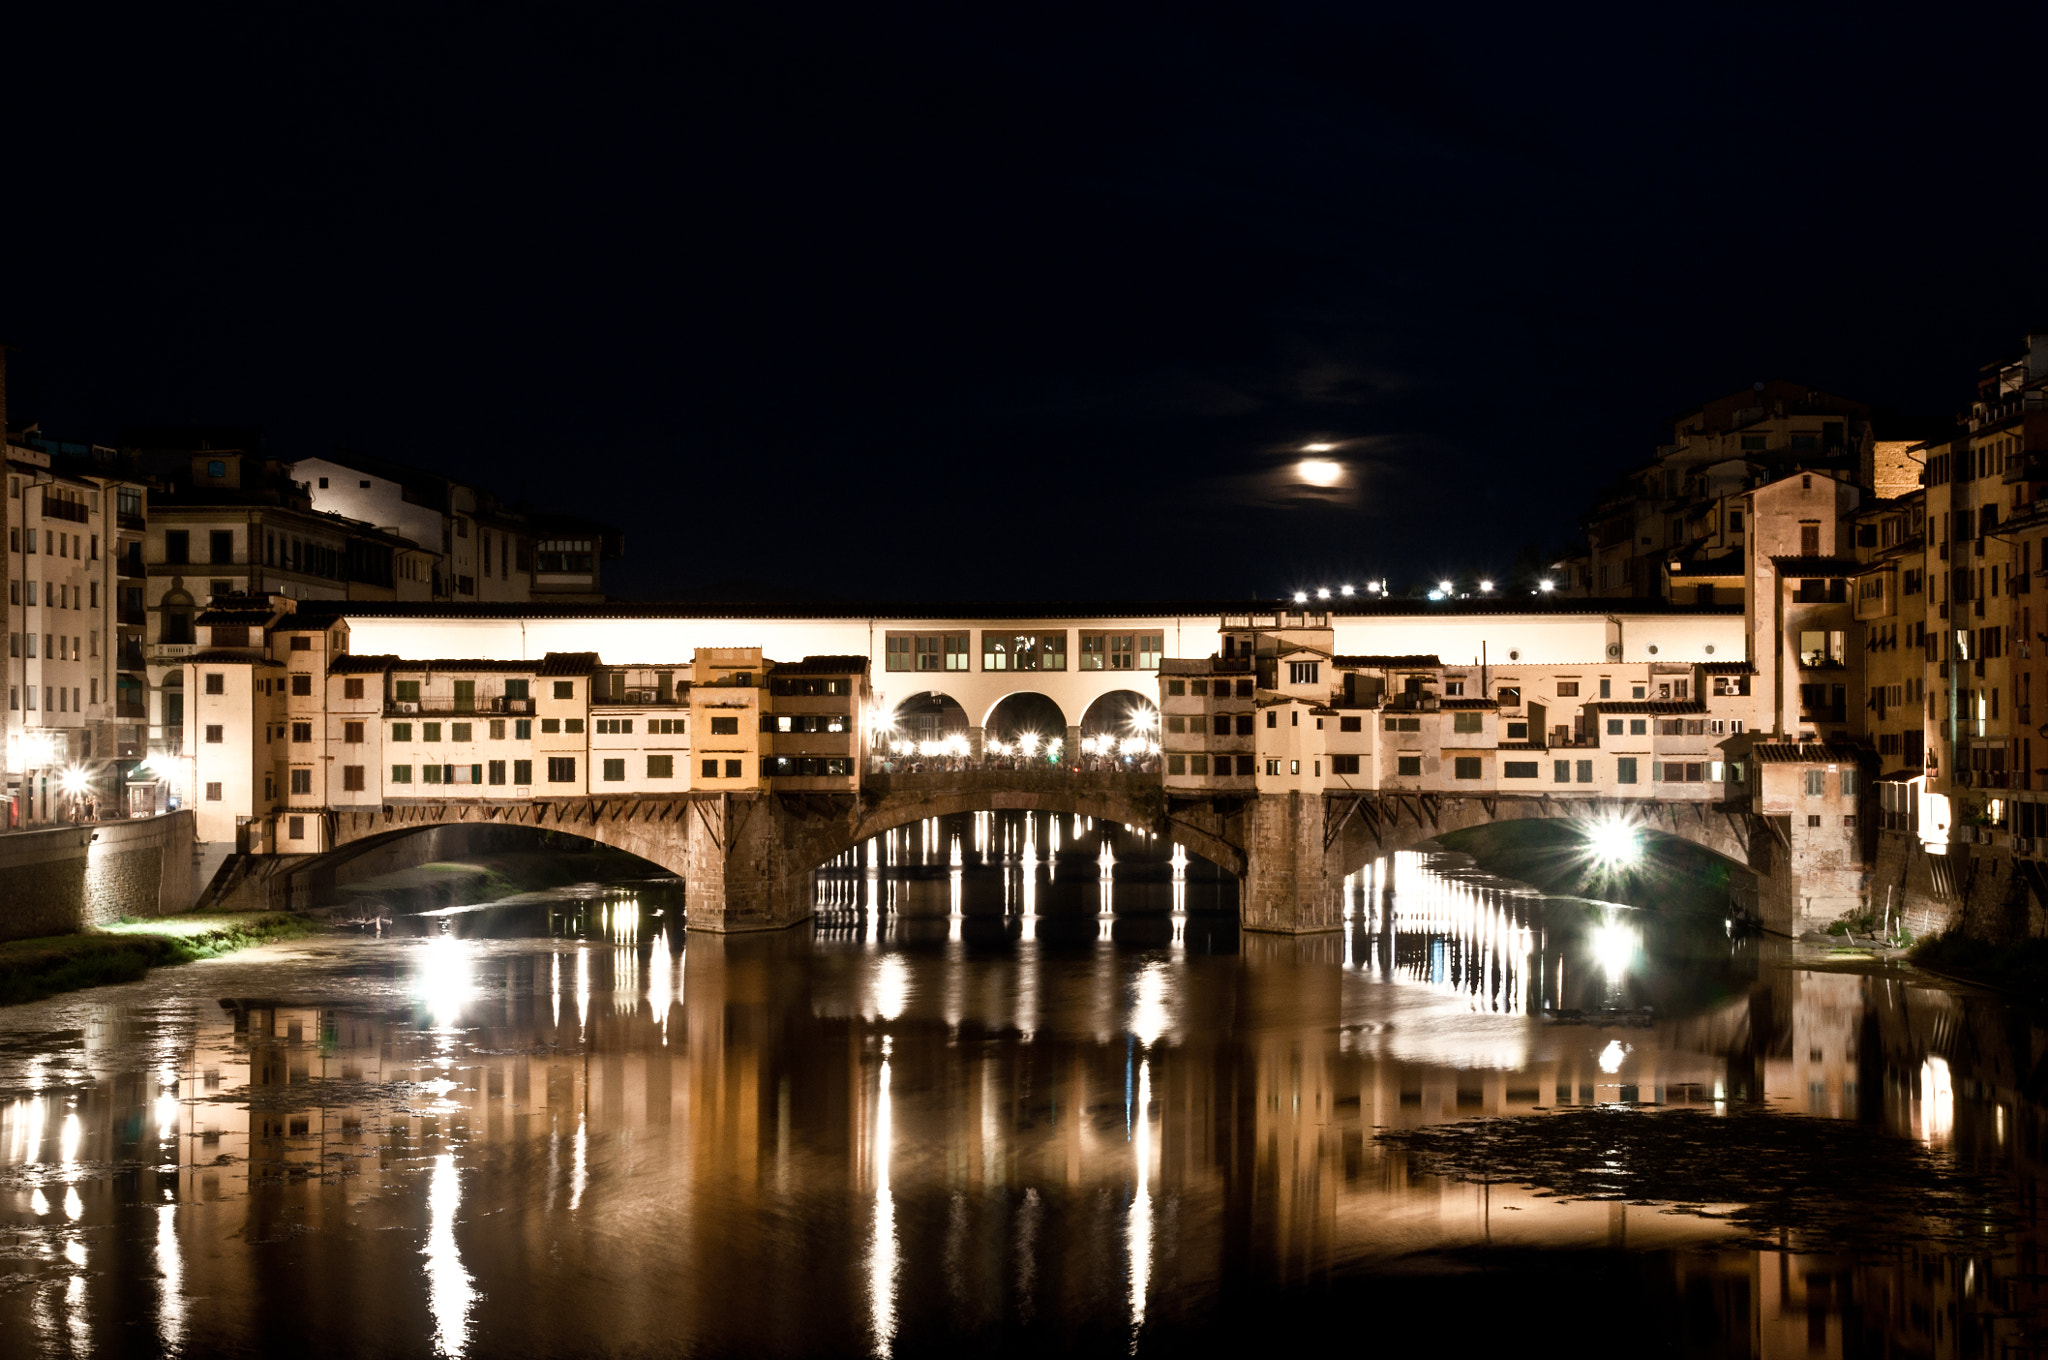 Photograph Ponte Vecchio at night by Felix Chan on 500px